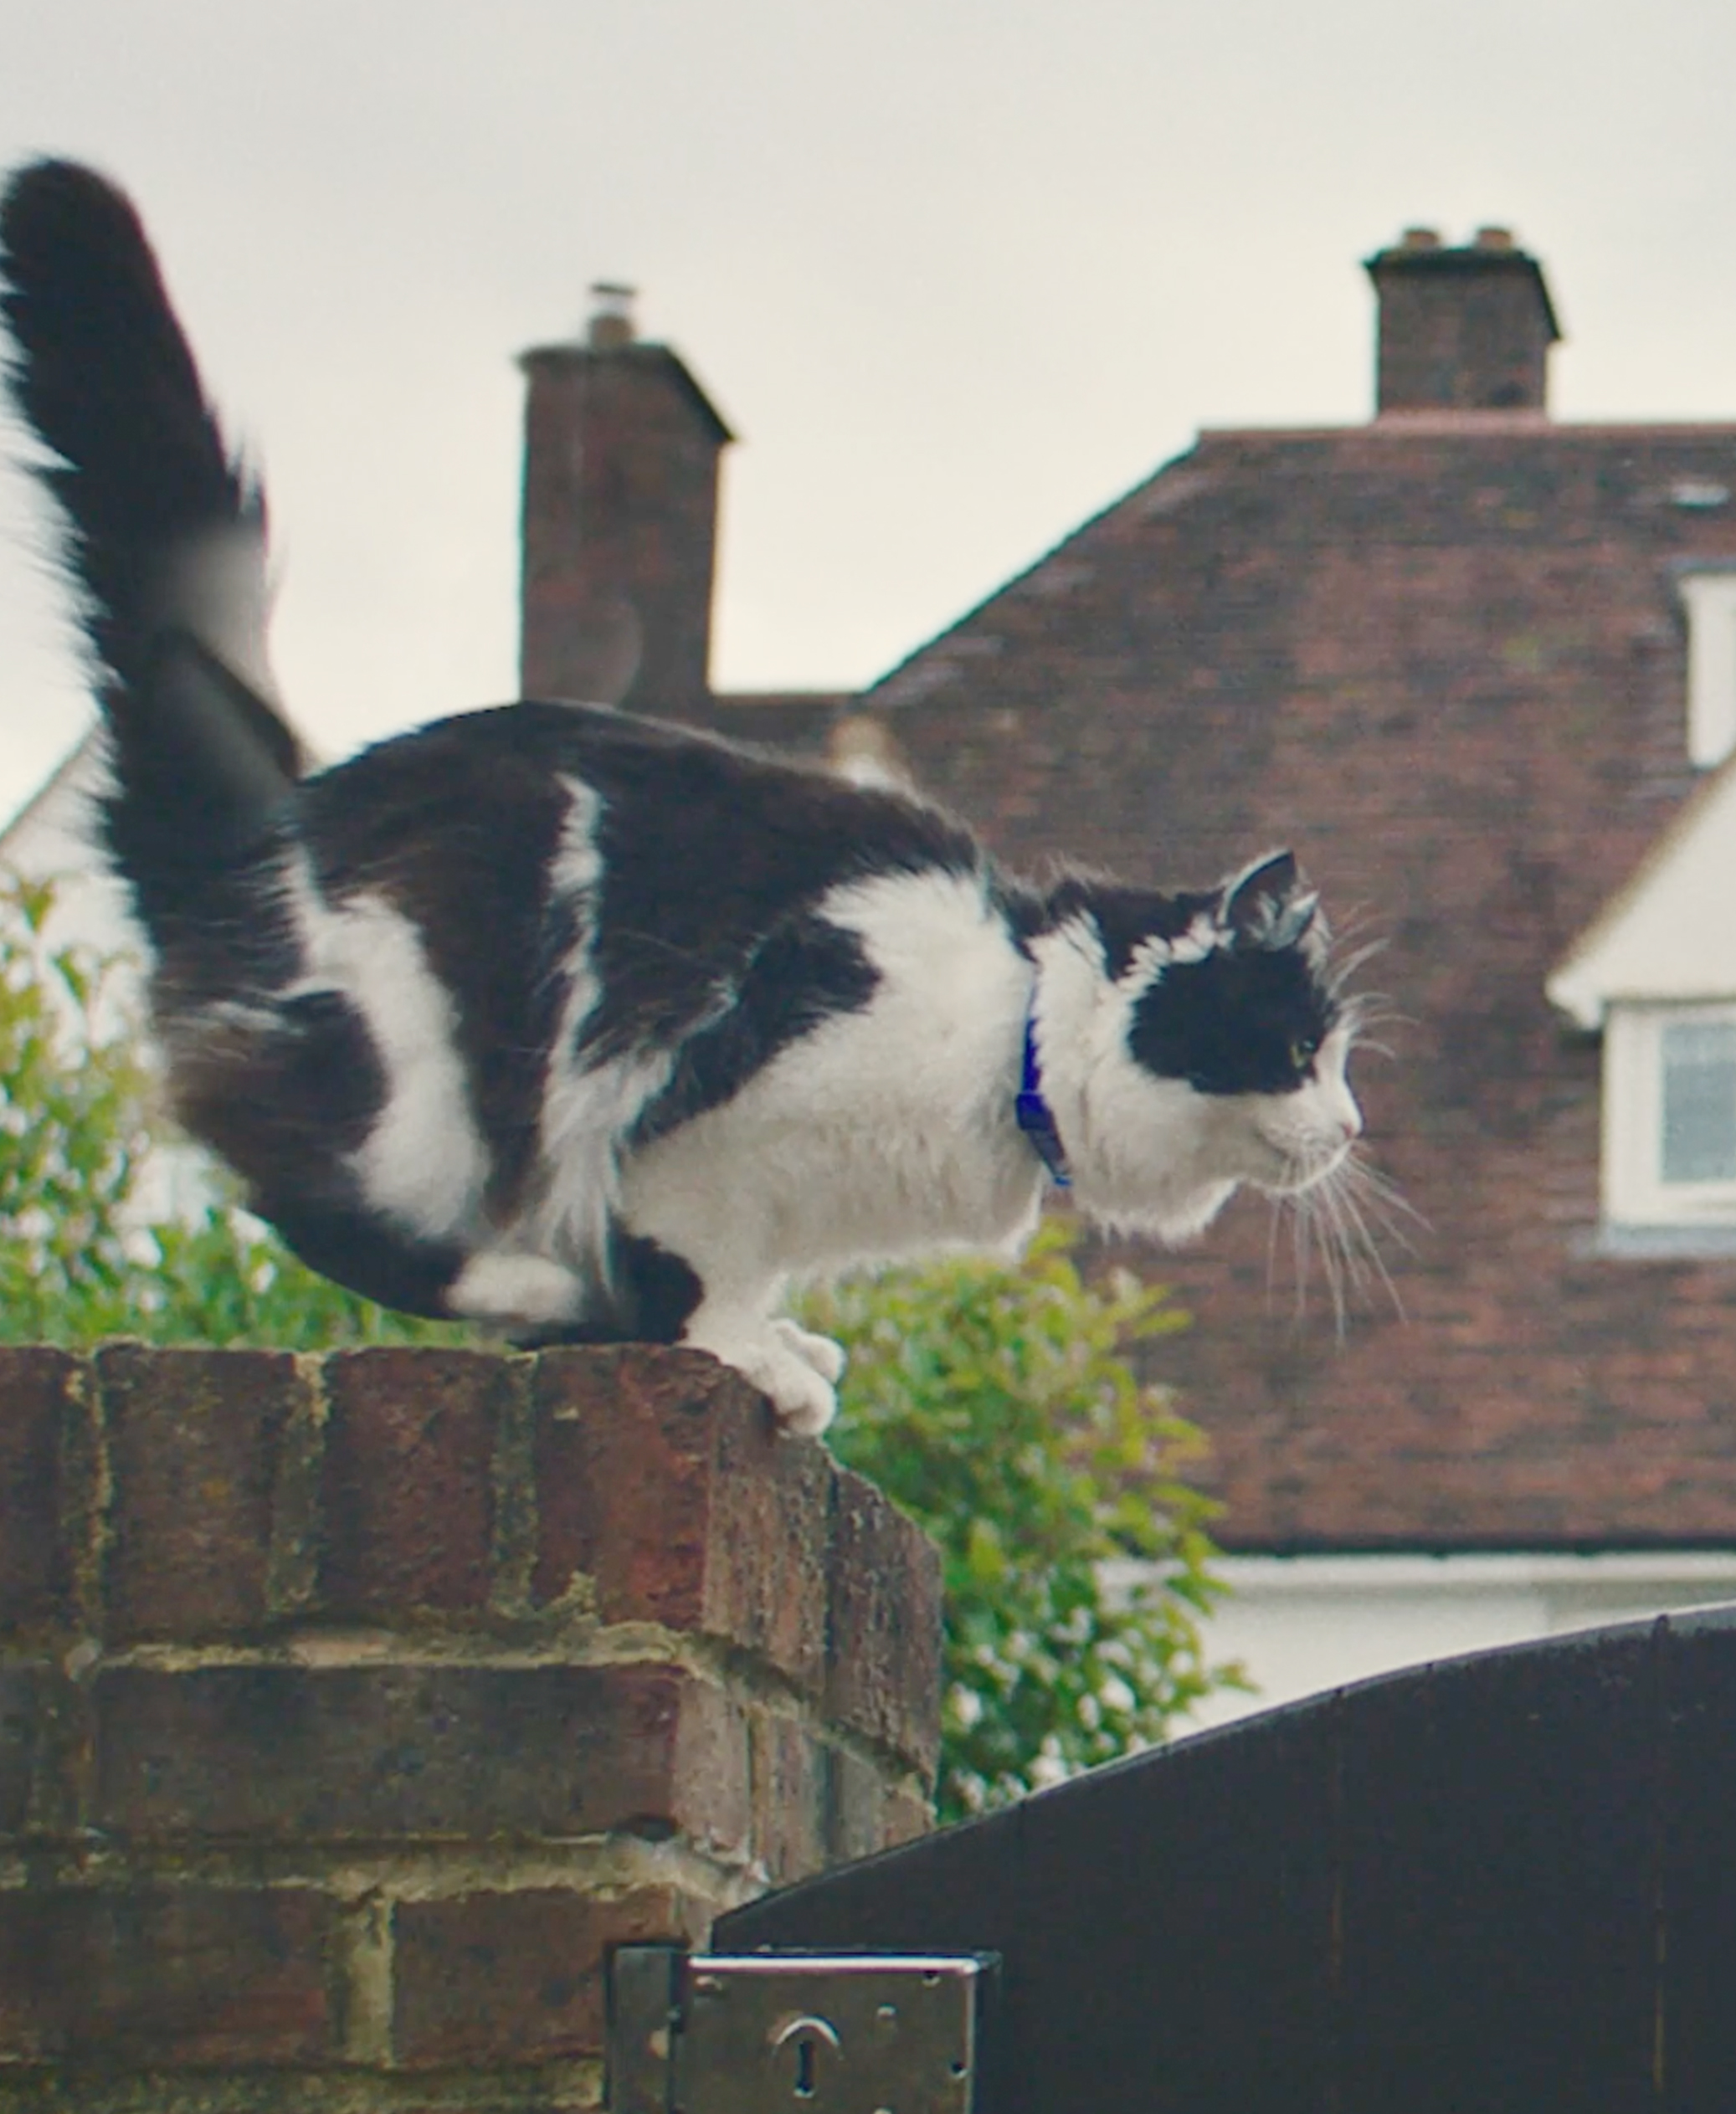 Polly, long-haired black and white cat jumping